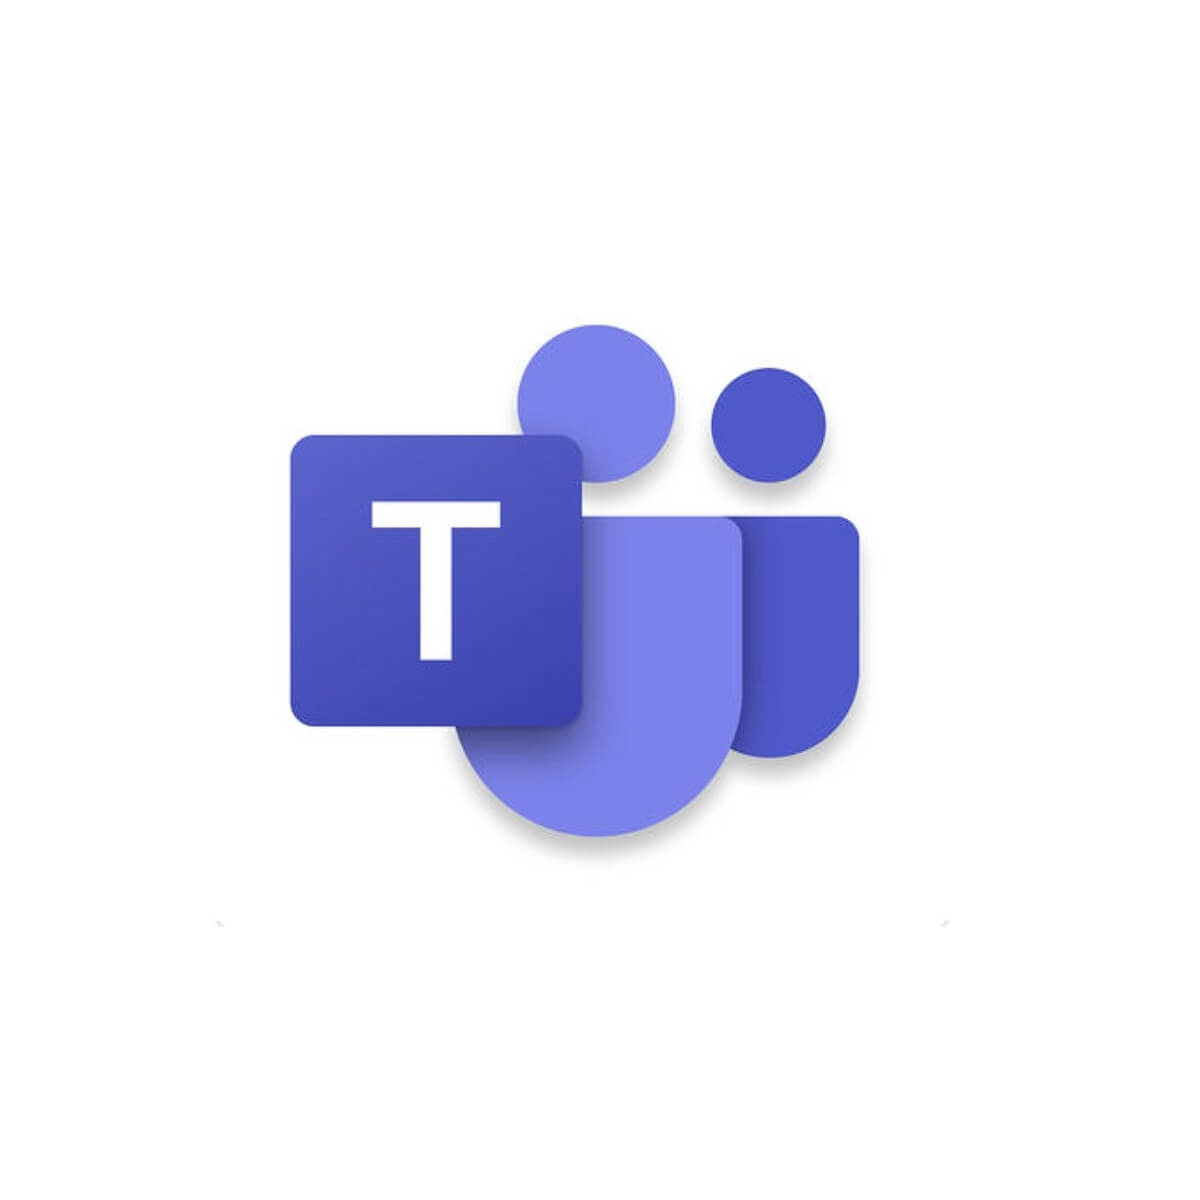 Beeldbellen met Microsoft Teams op Android apparaten